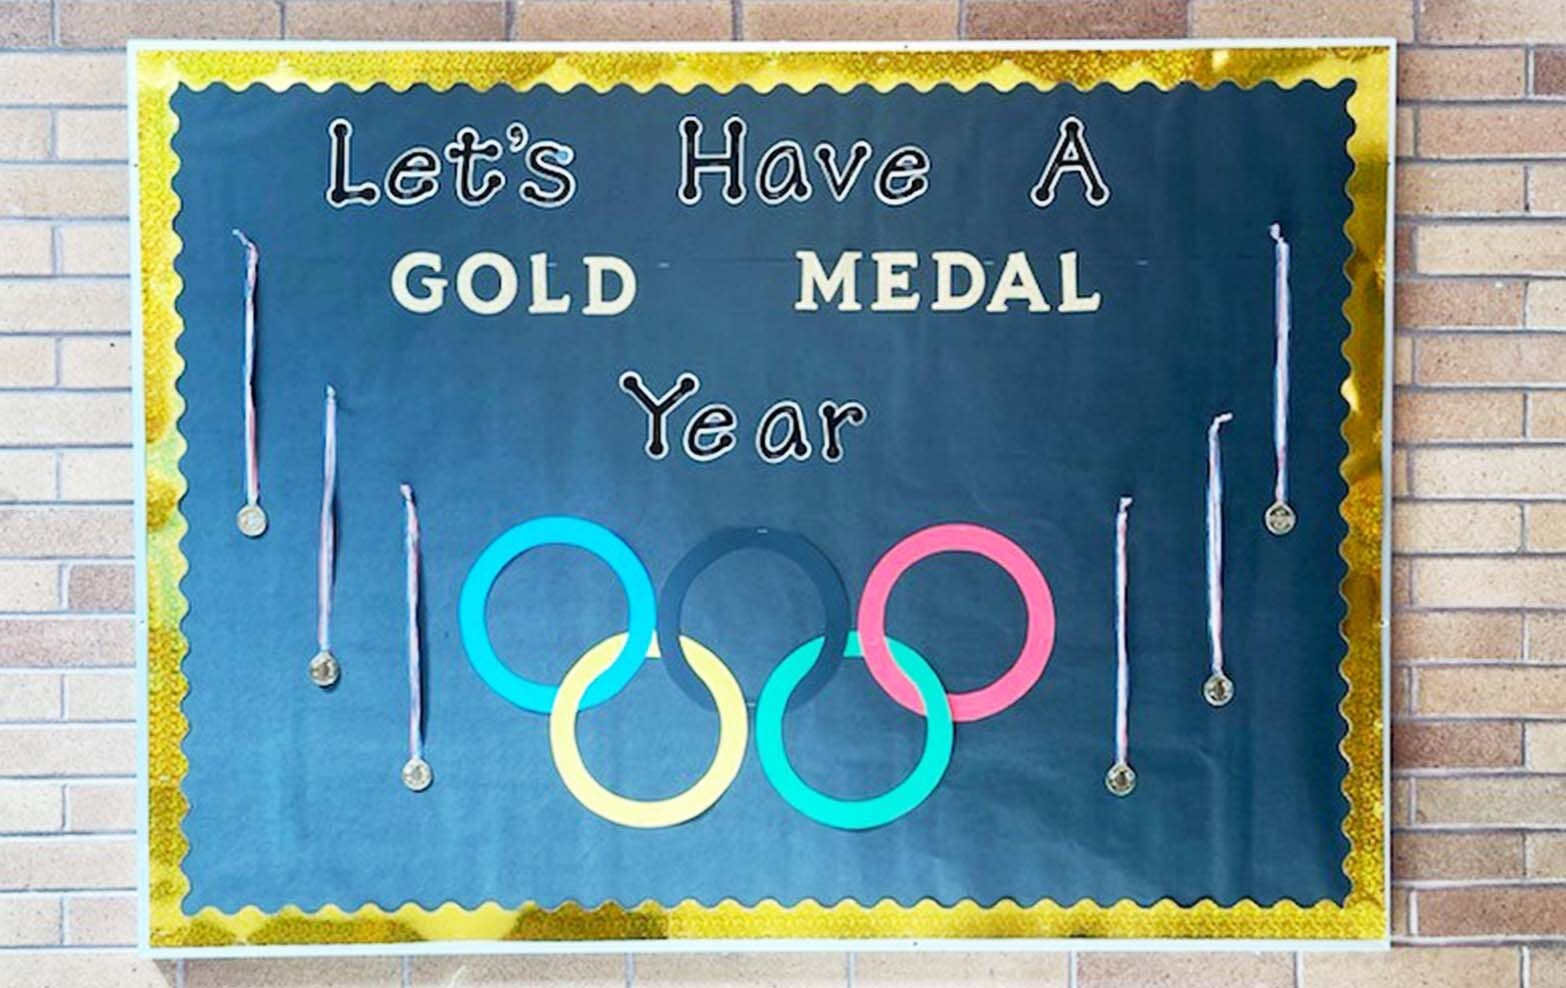 Poster-Let's have a gold medal year